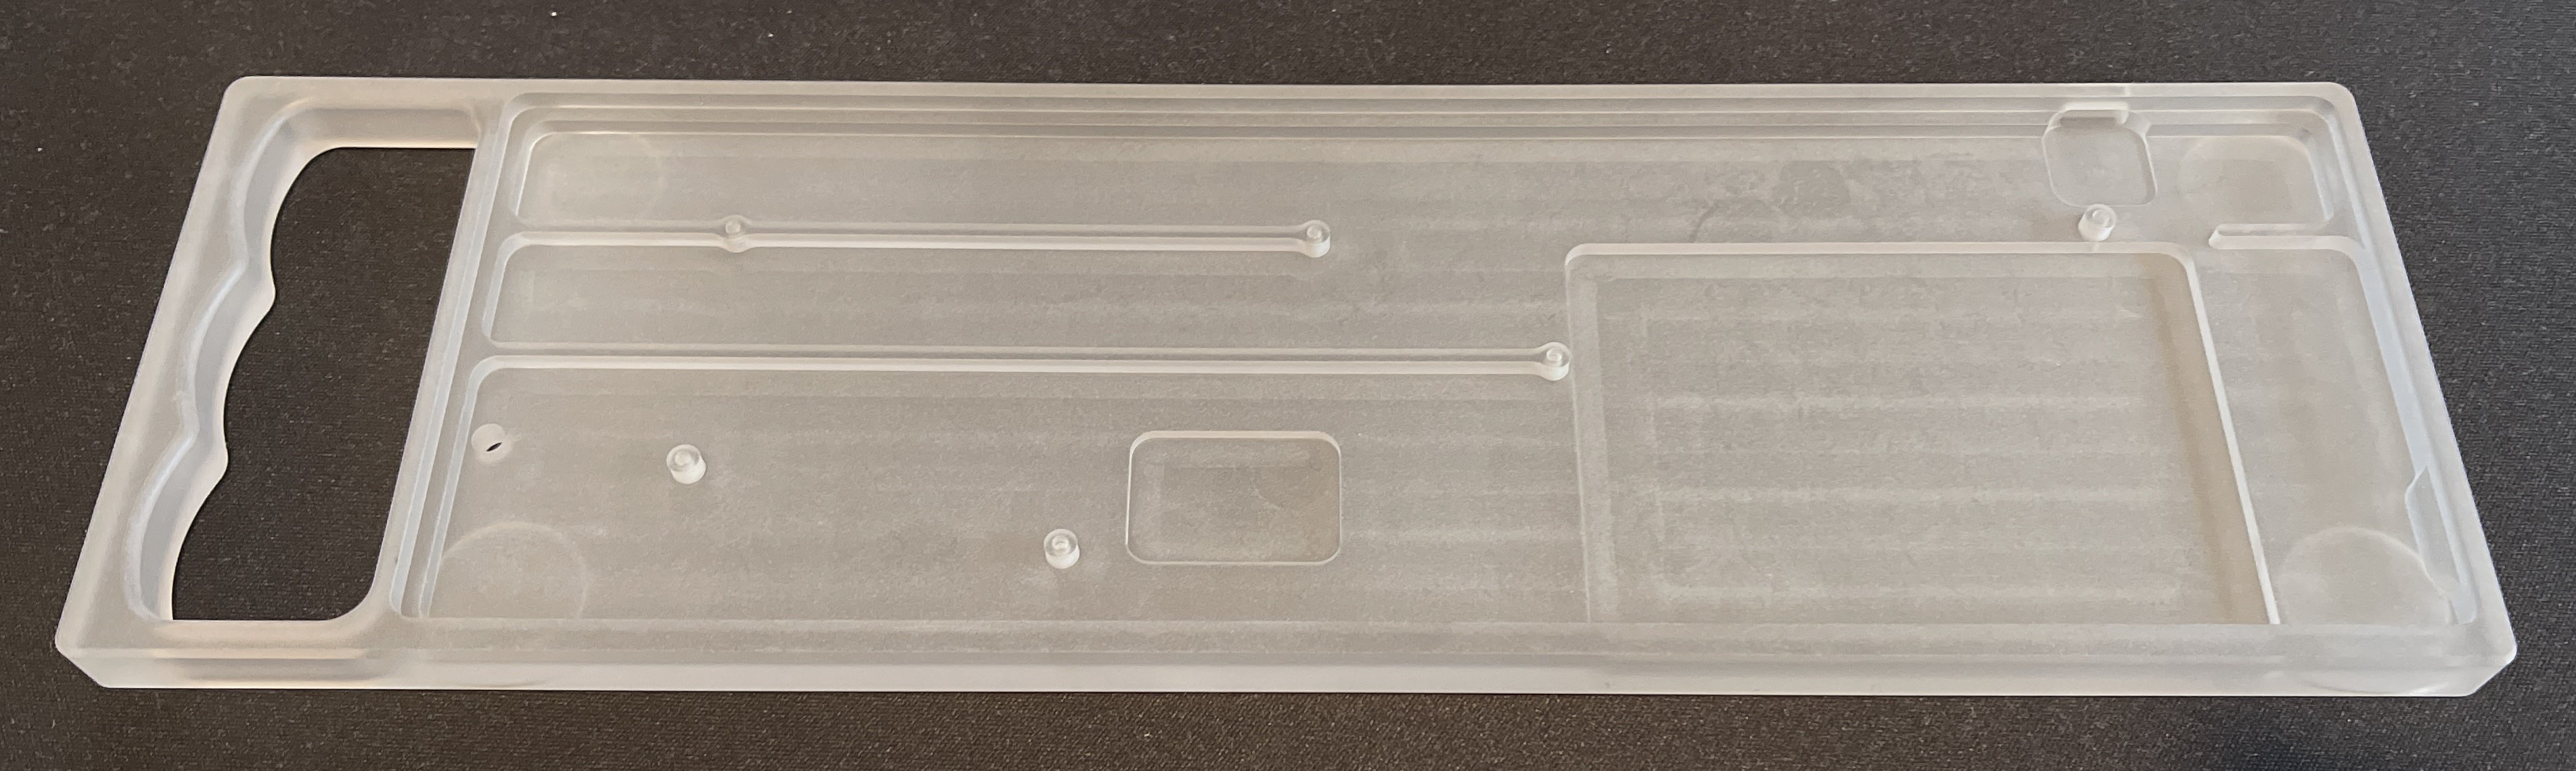 Top view of a polycarbonate Rackmount showing cutouts for the Bluetooth module (center) and battery well (right)